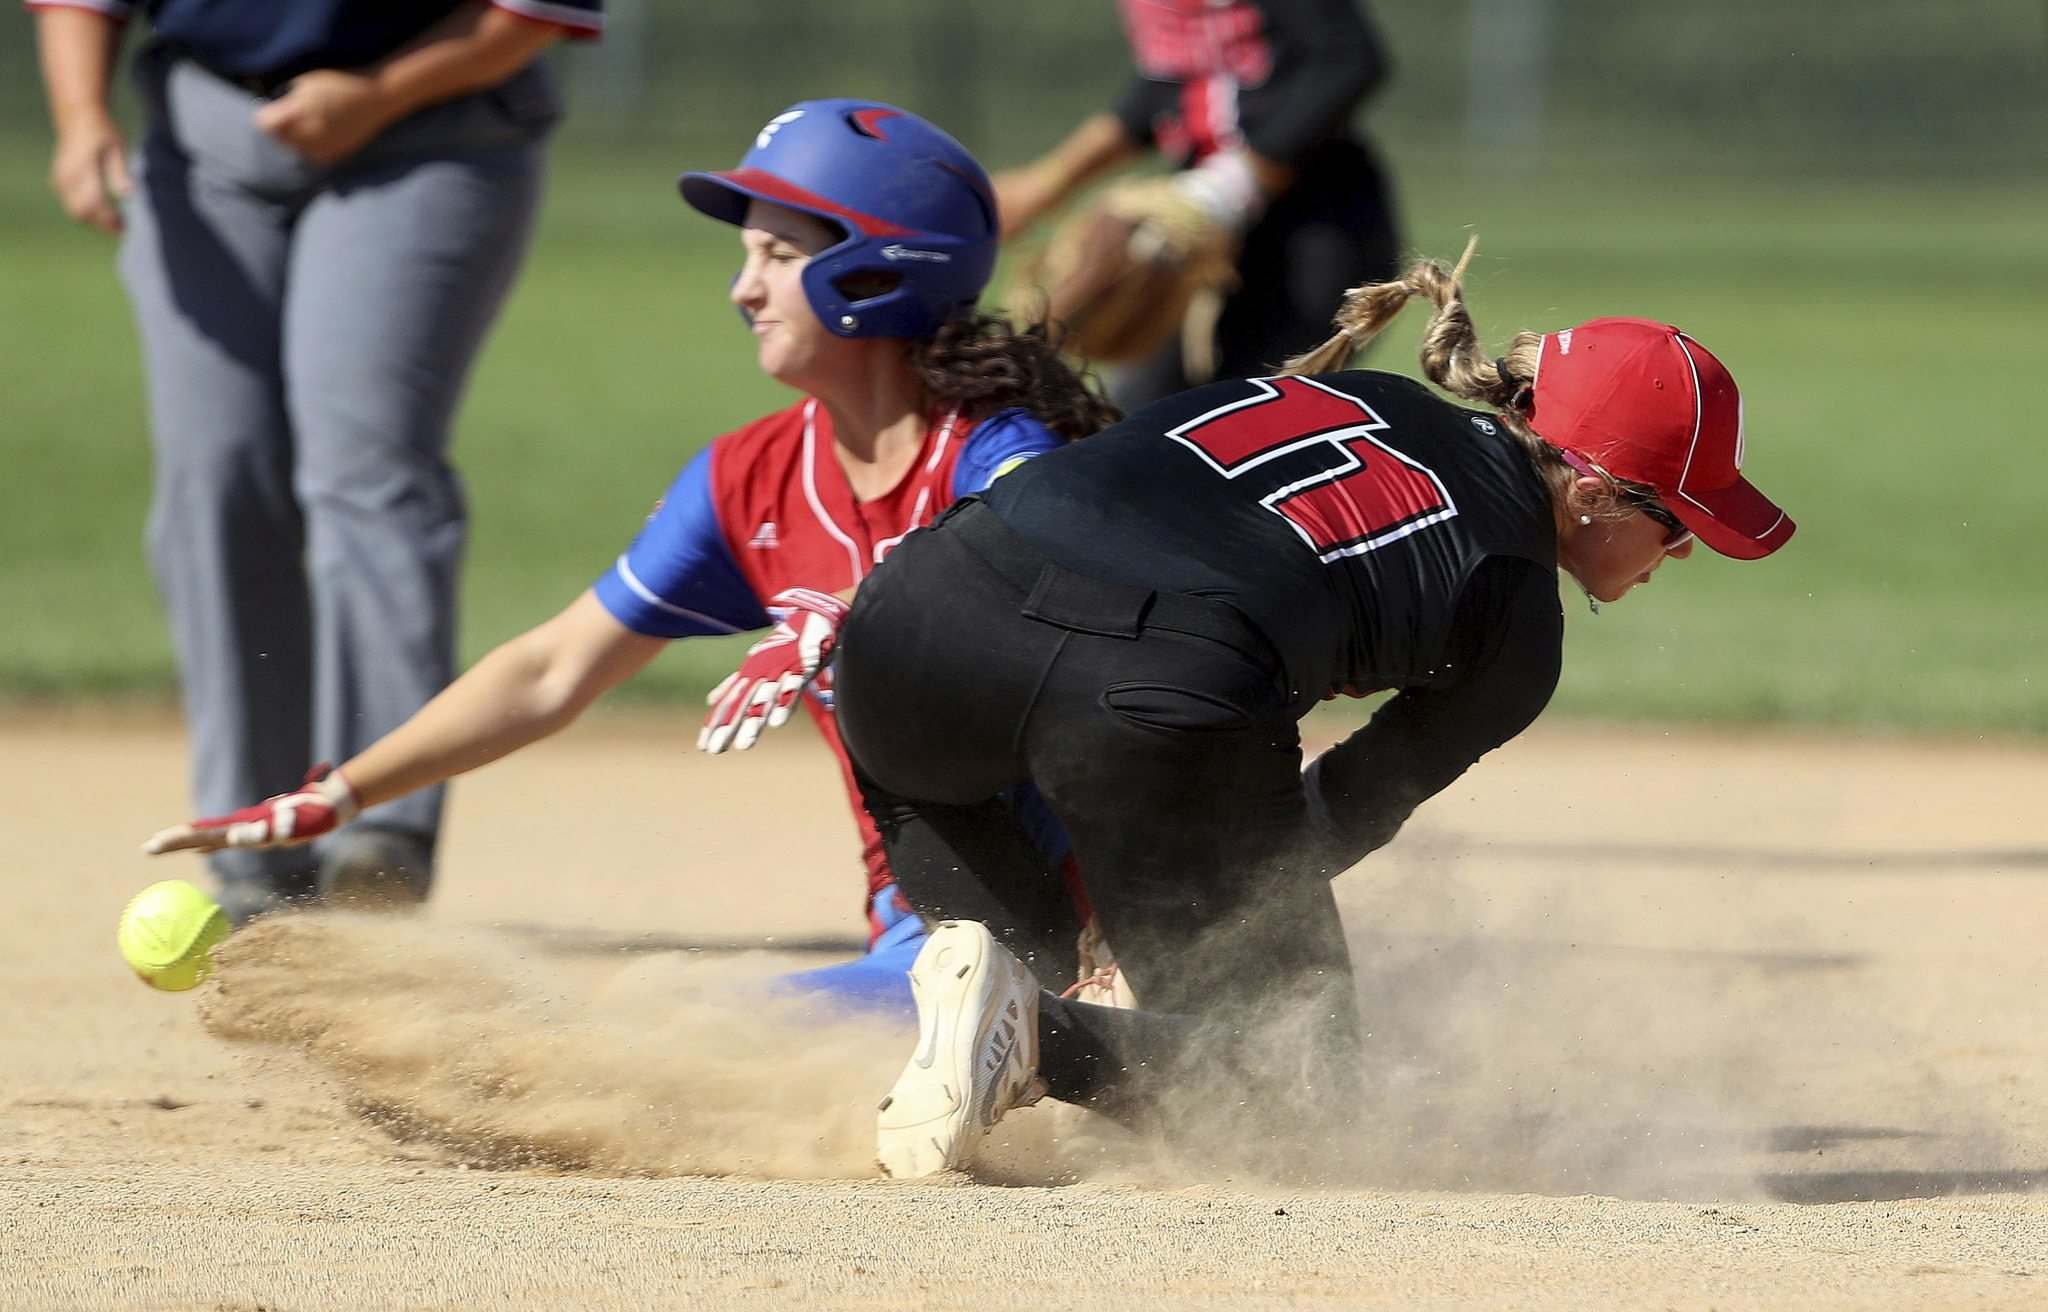 TREVOR HAGAN / WINNIPEG FREE PRESS</p><p>British Columbia's Taylor Lundrigan (left) crashes into Ontario's Courtney Gilbert as she slides into second base during girls softball action Saturday at the Canada Summer Games.</p>